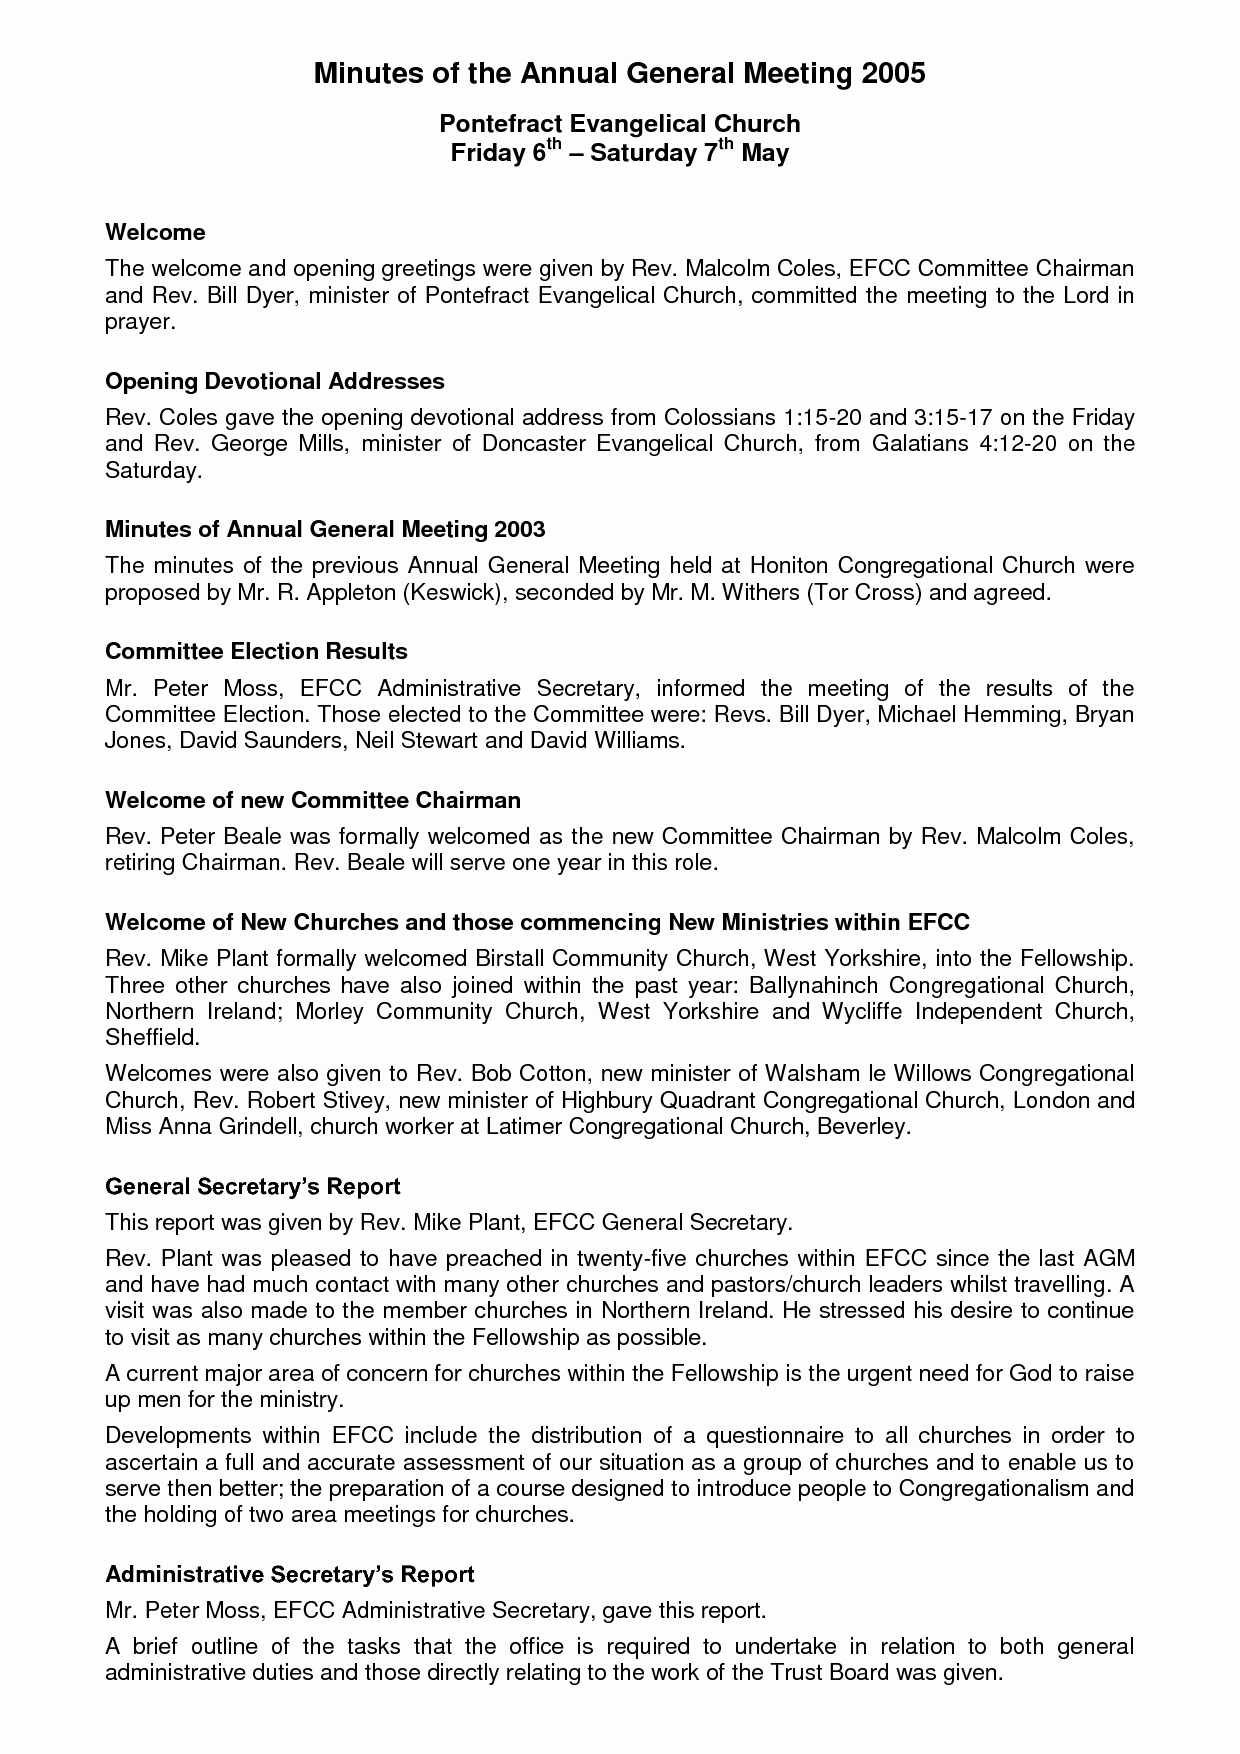 Church Meeting Minutes Template Elegant Annual General Meeting format Image Collections Download